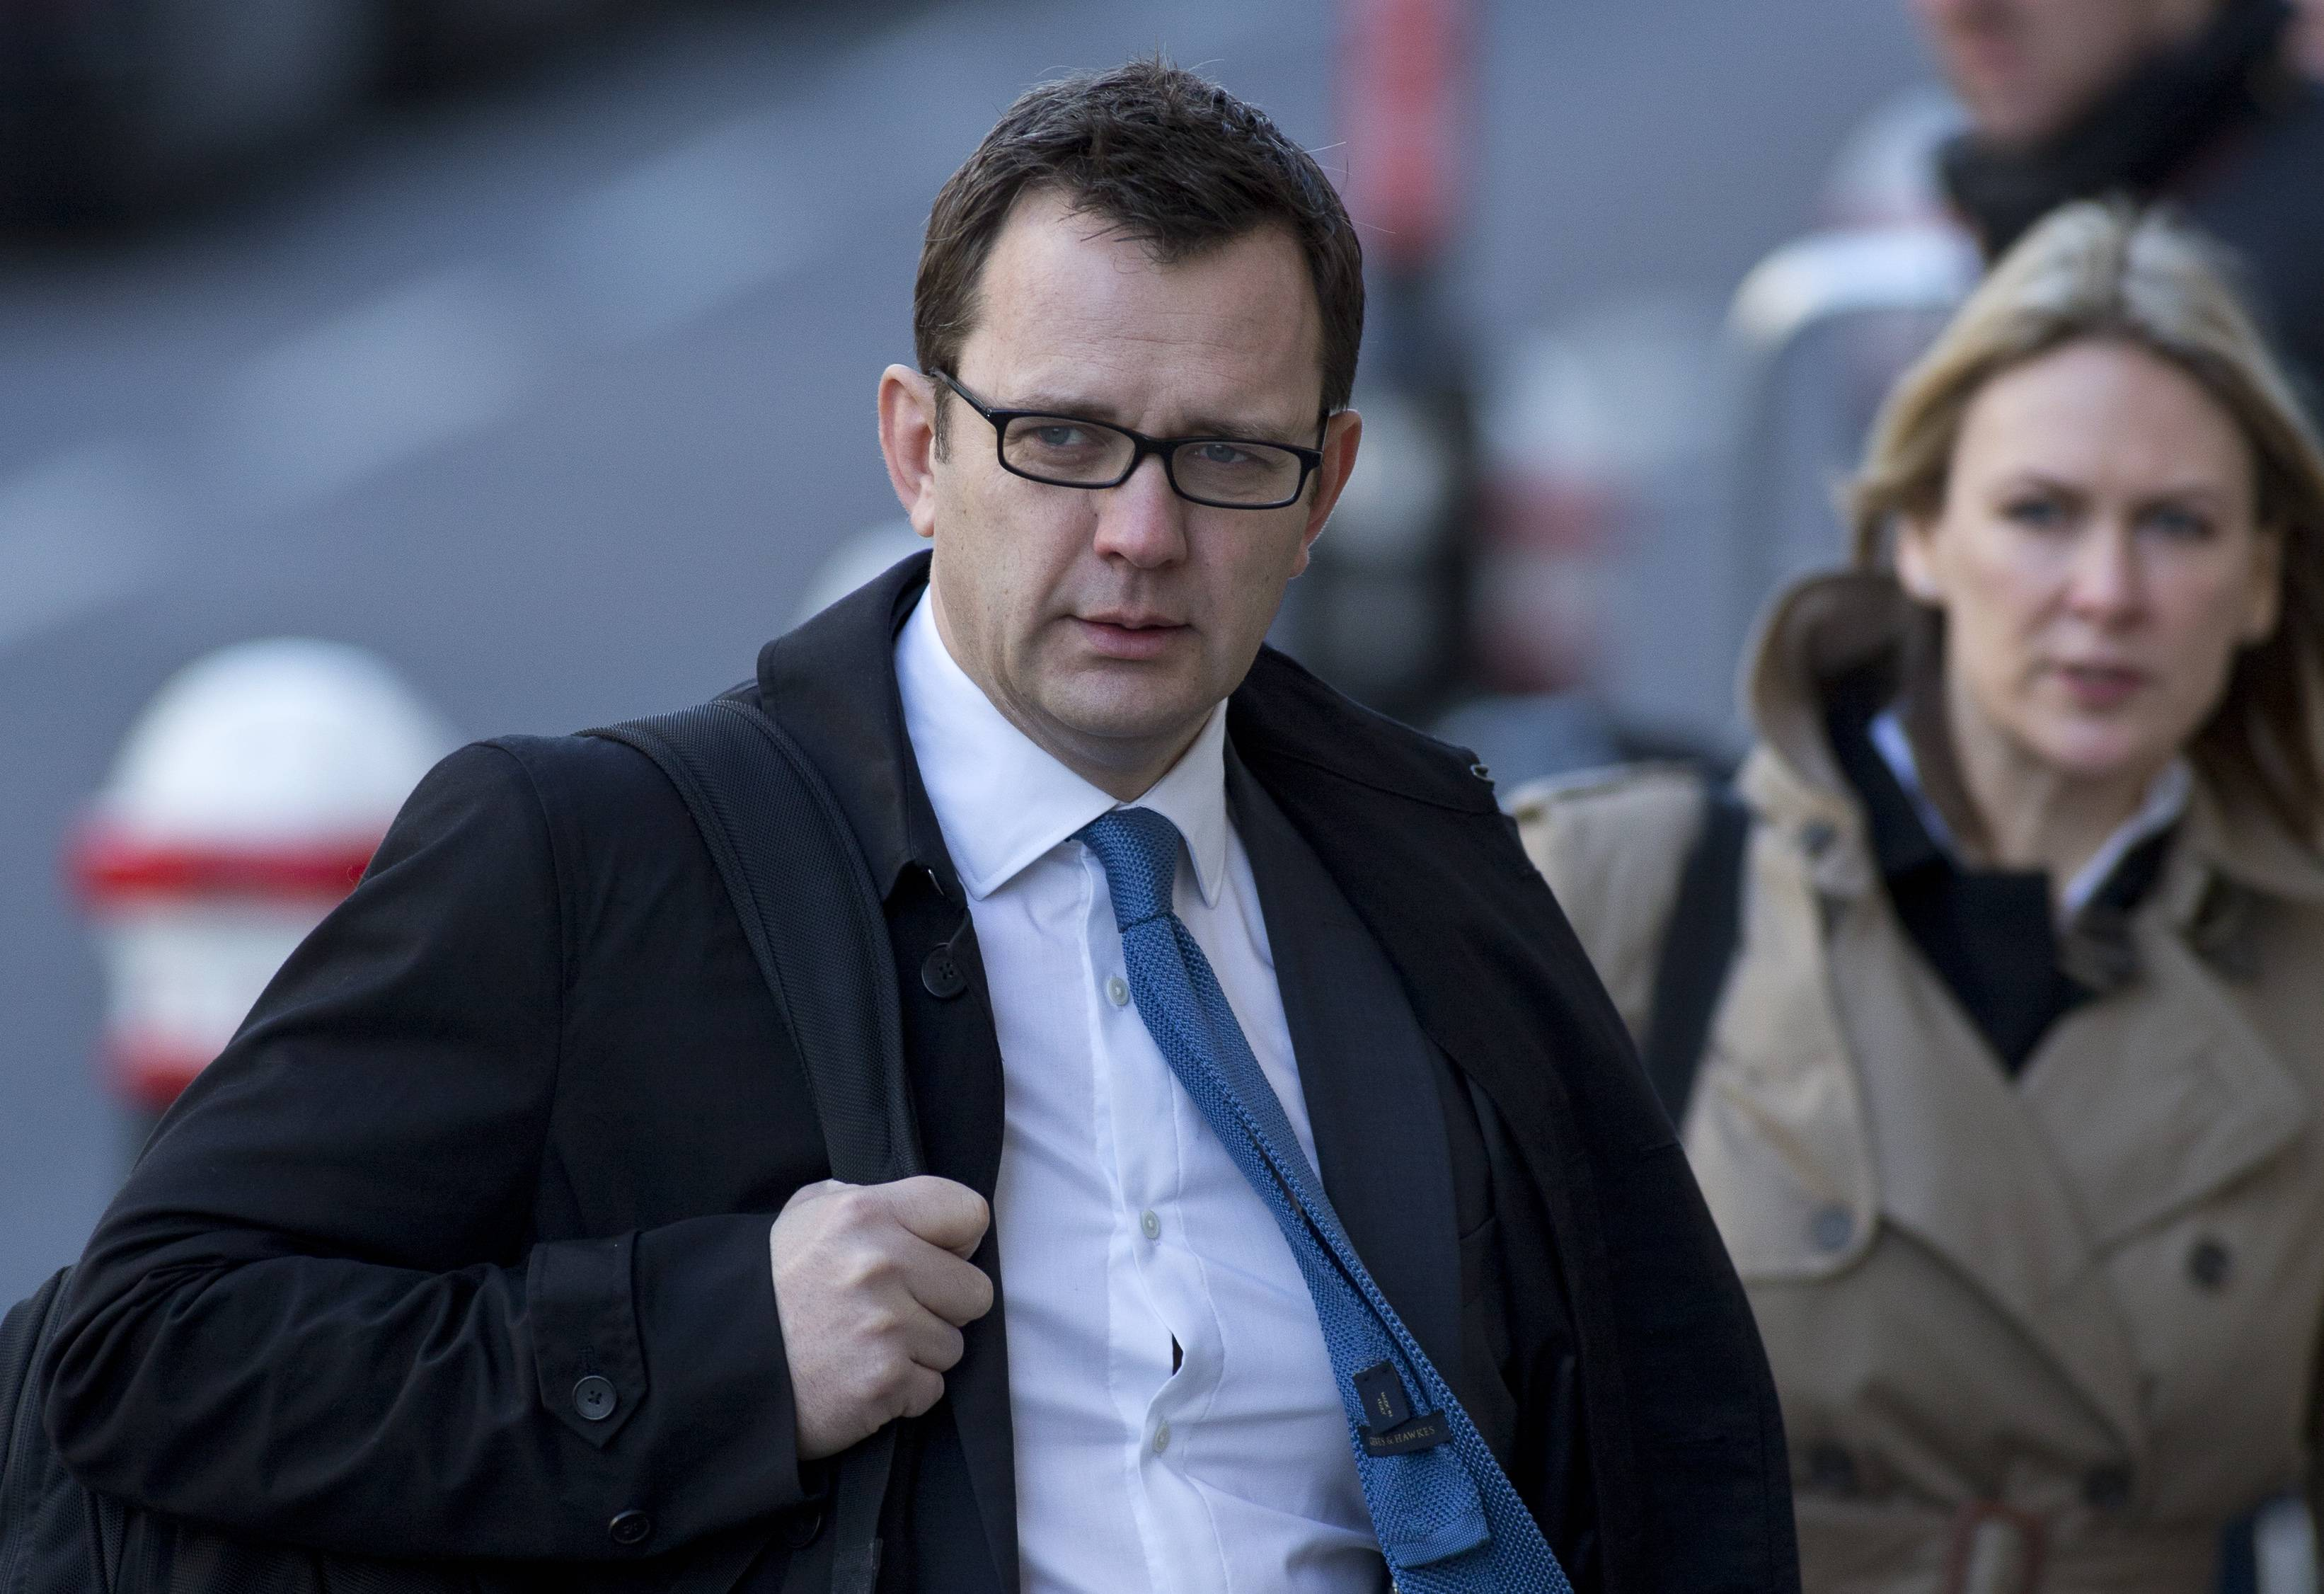 Andy Coulson, former News of the World editor and former aide to British Prime Minister David Cameron, said under oath Tuesday that he was never involved in phone hacking when he was the editor of a Rupert Murdoch-owned tabloid.